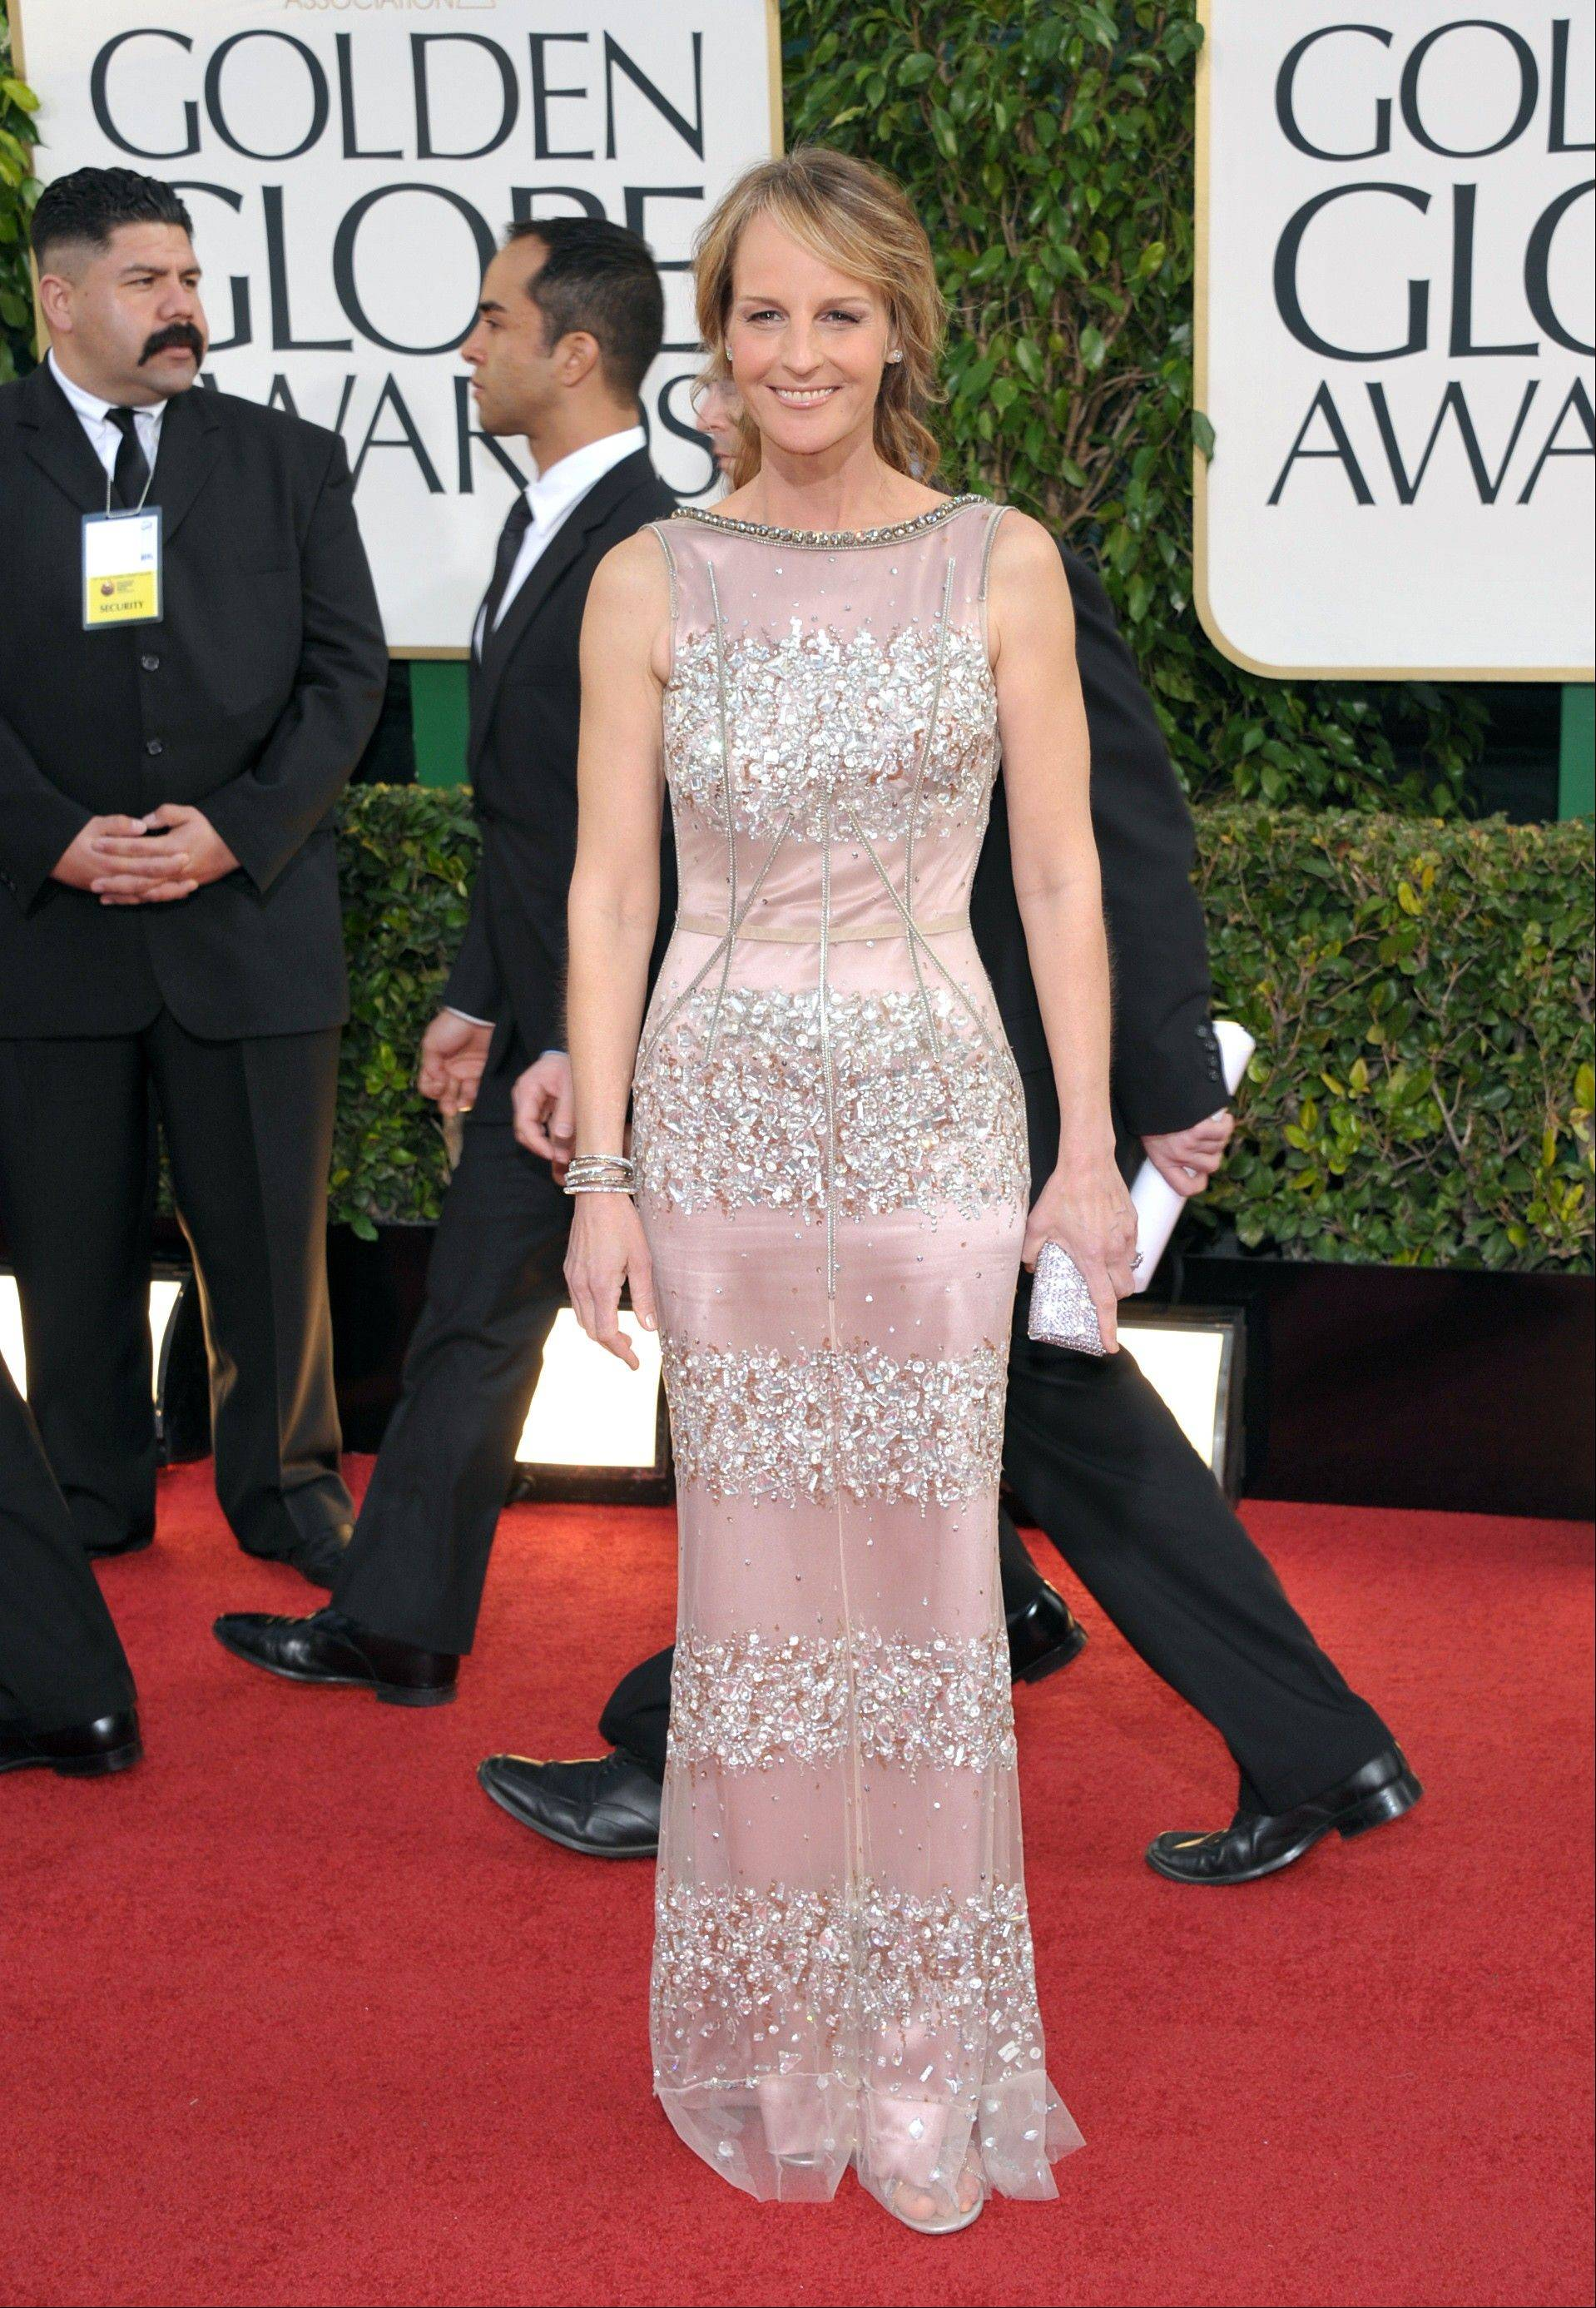 Actress Helen Hunt arrives at the 70th Annual Golden Globe Awards at the Beverly Hilton Hotel on Sunday Jan. 13, 2013, in Beverly Hills, Calif.